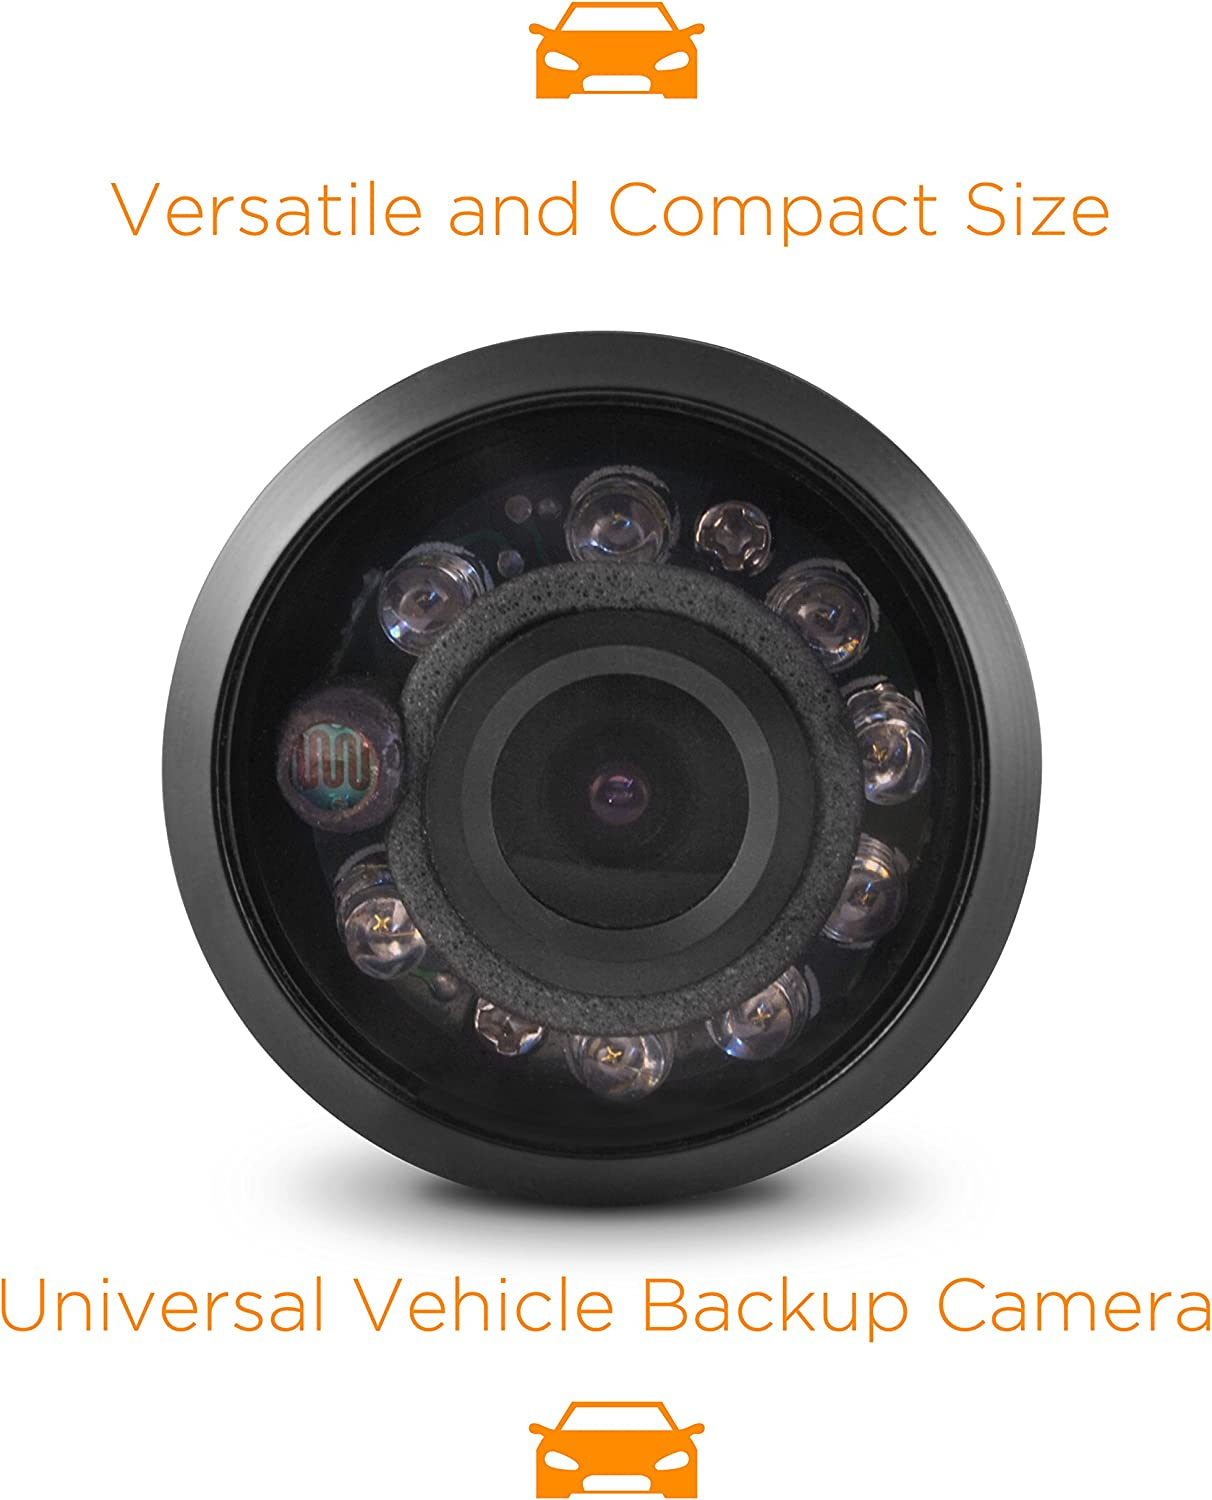 0.860.650.50 inch 170 Degree Viewing Angle Rearview Camera Xo Vision World Smallest HD Color CCD Waterproof Vehicle Car Rear View Backup Camera